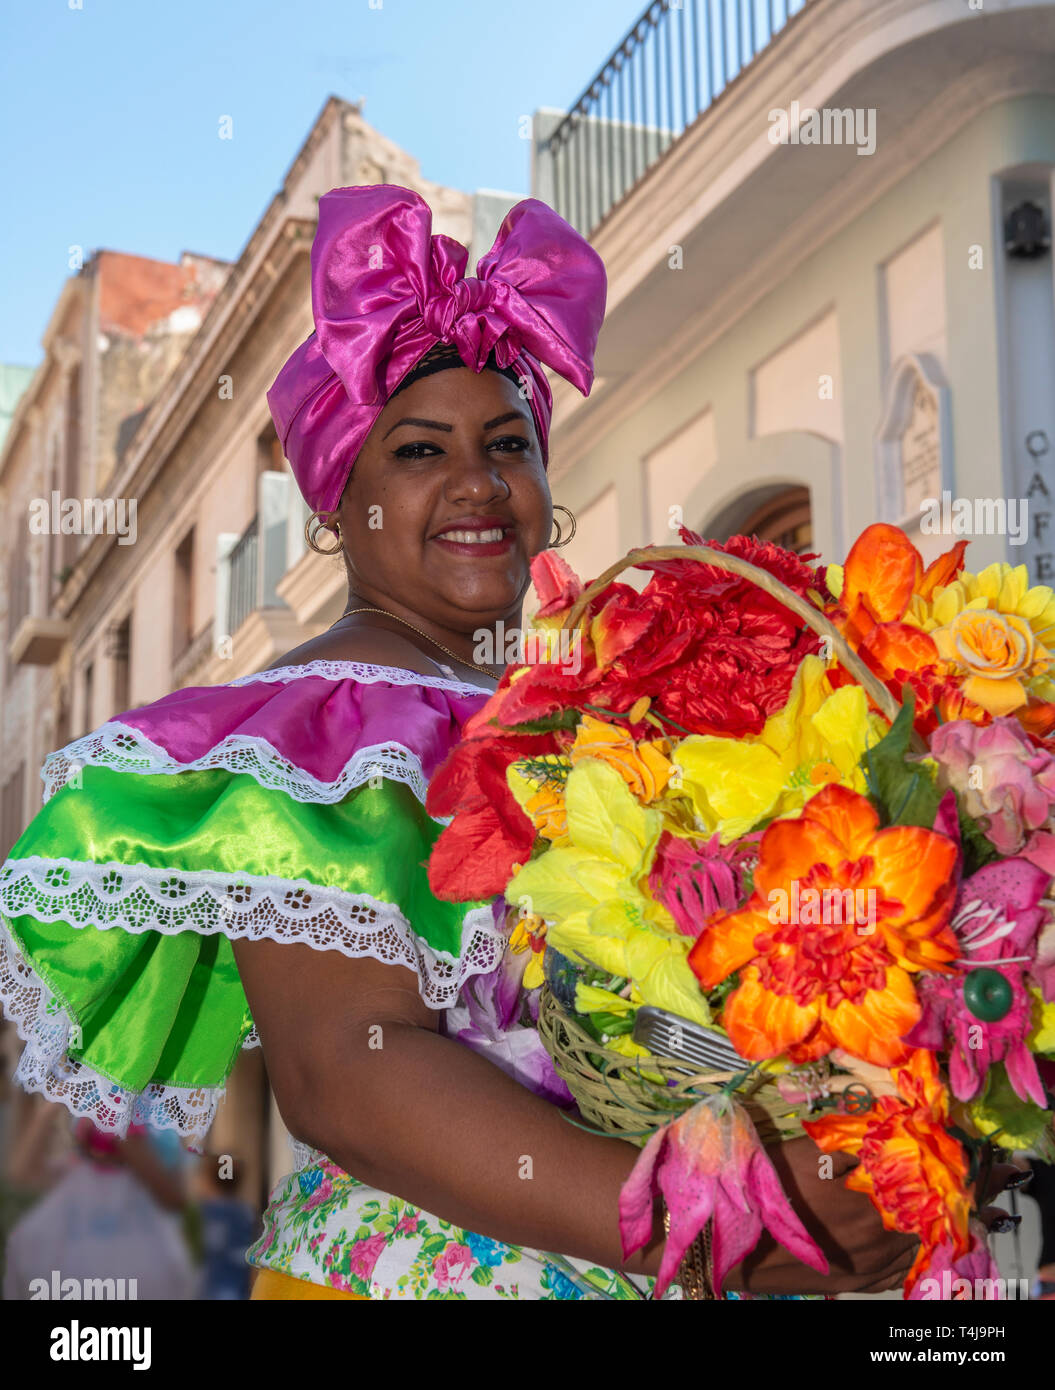 Cuban woman with traditional floral  clothing posing for tourists in street in  Old Havana, Cuba Stock Photo